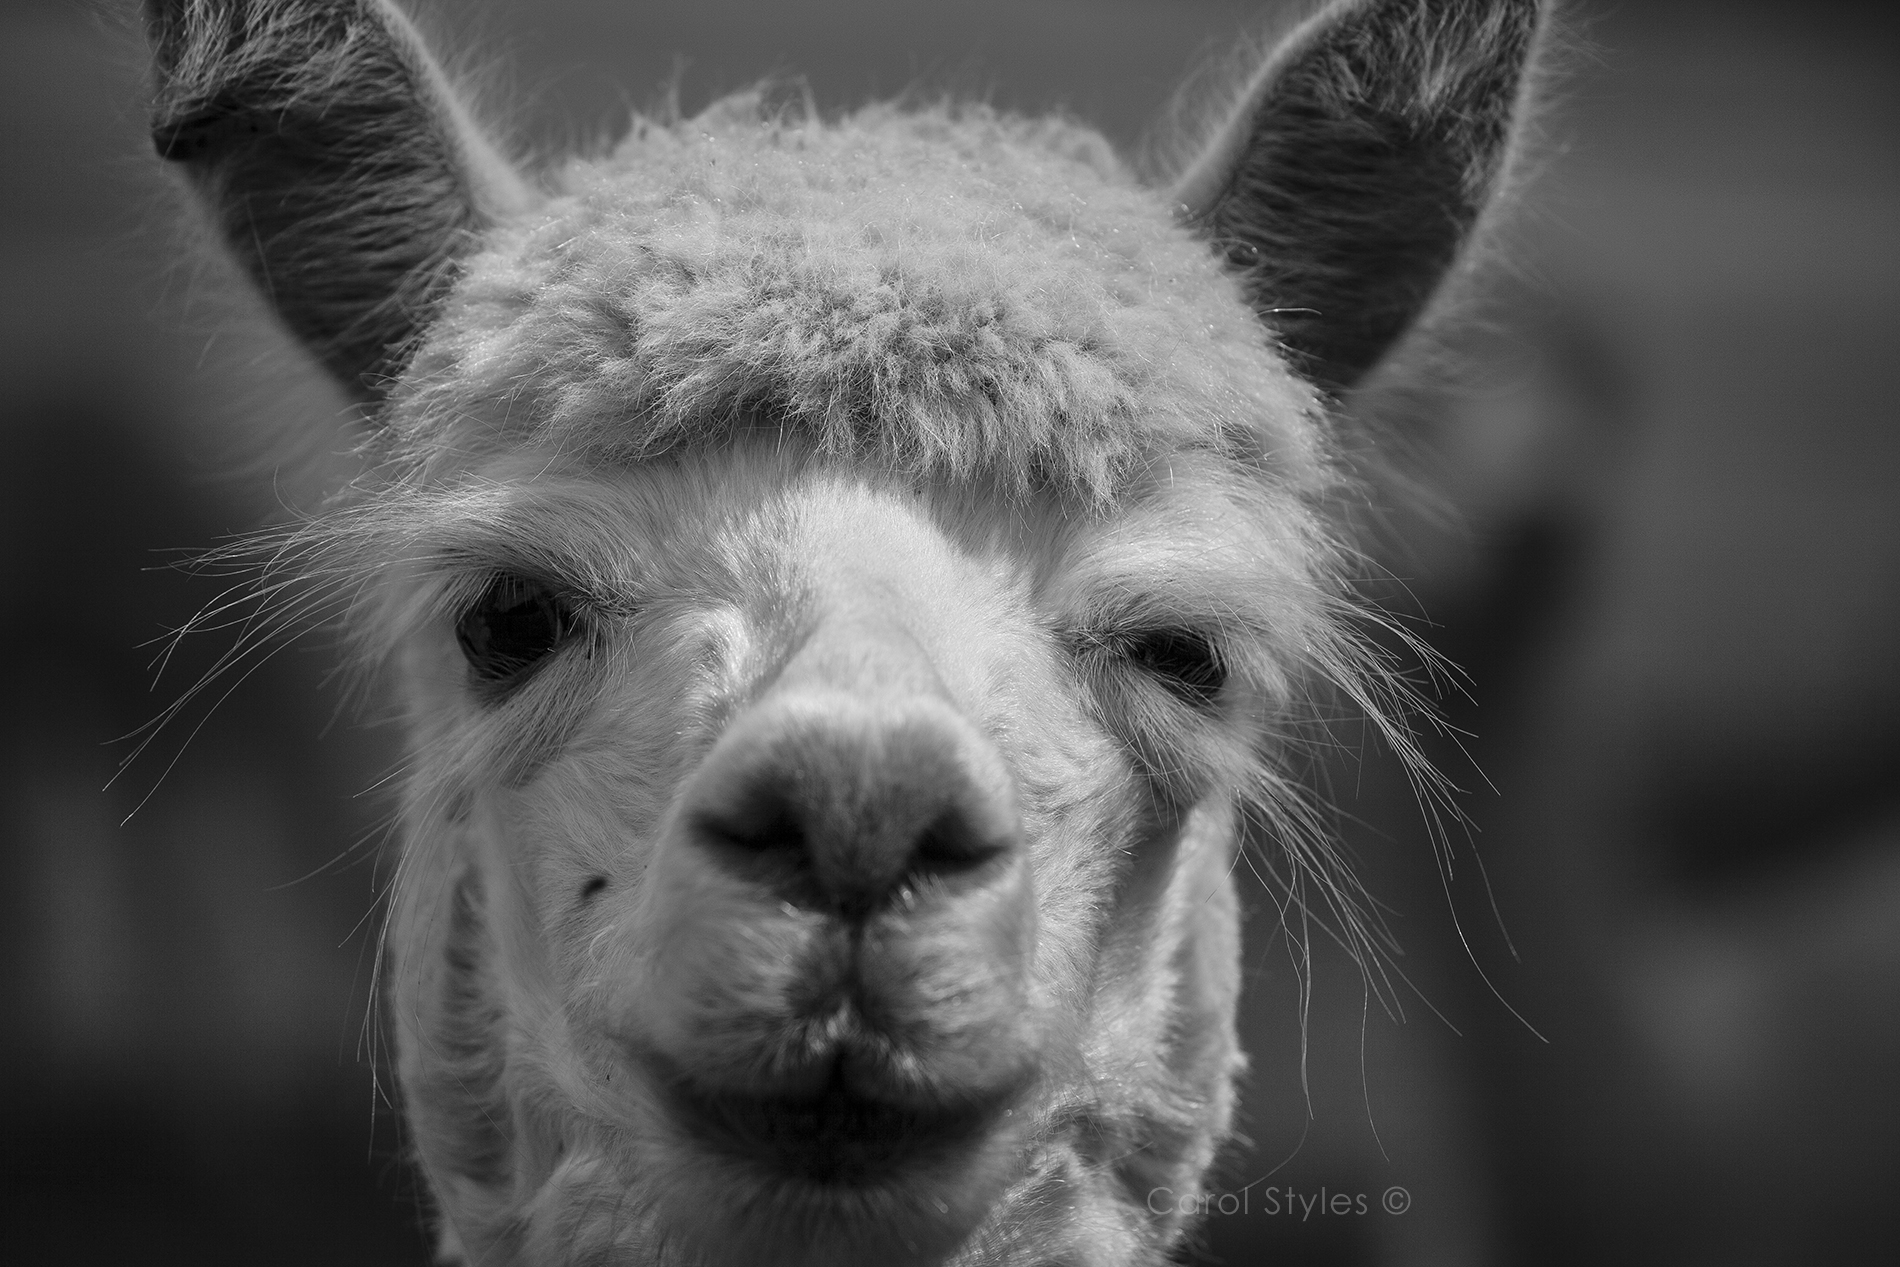 Alpaca eyebrows